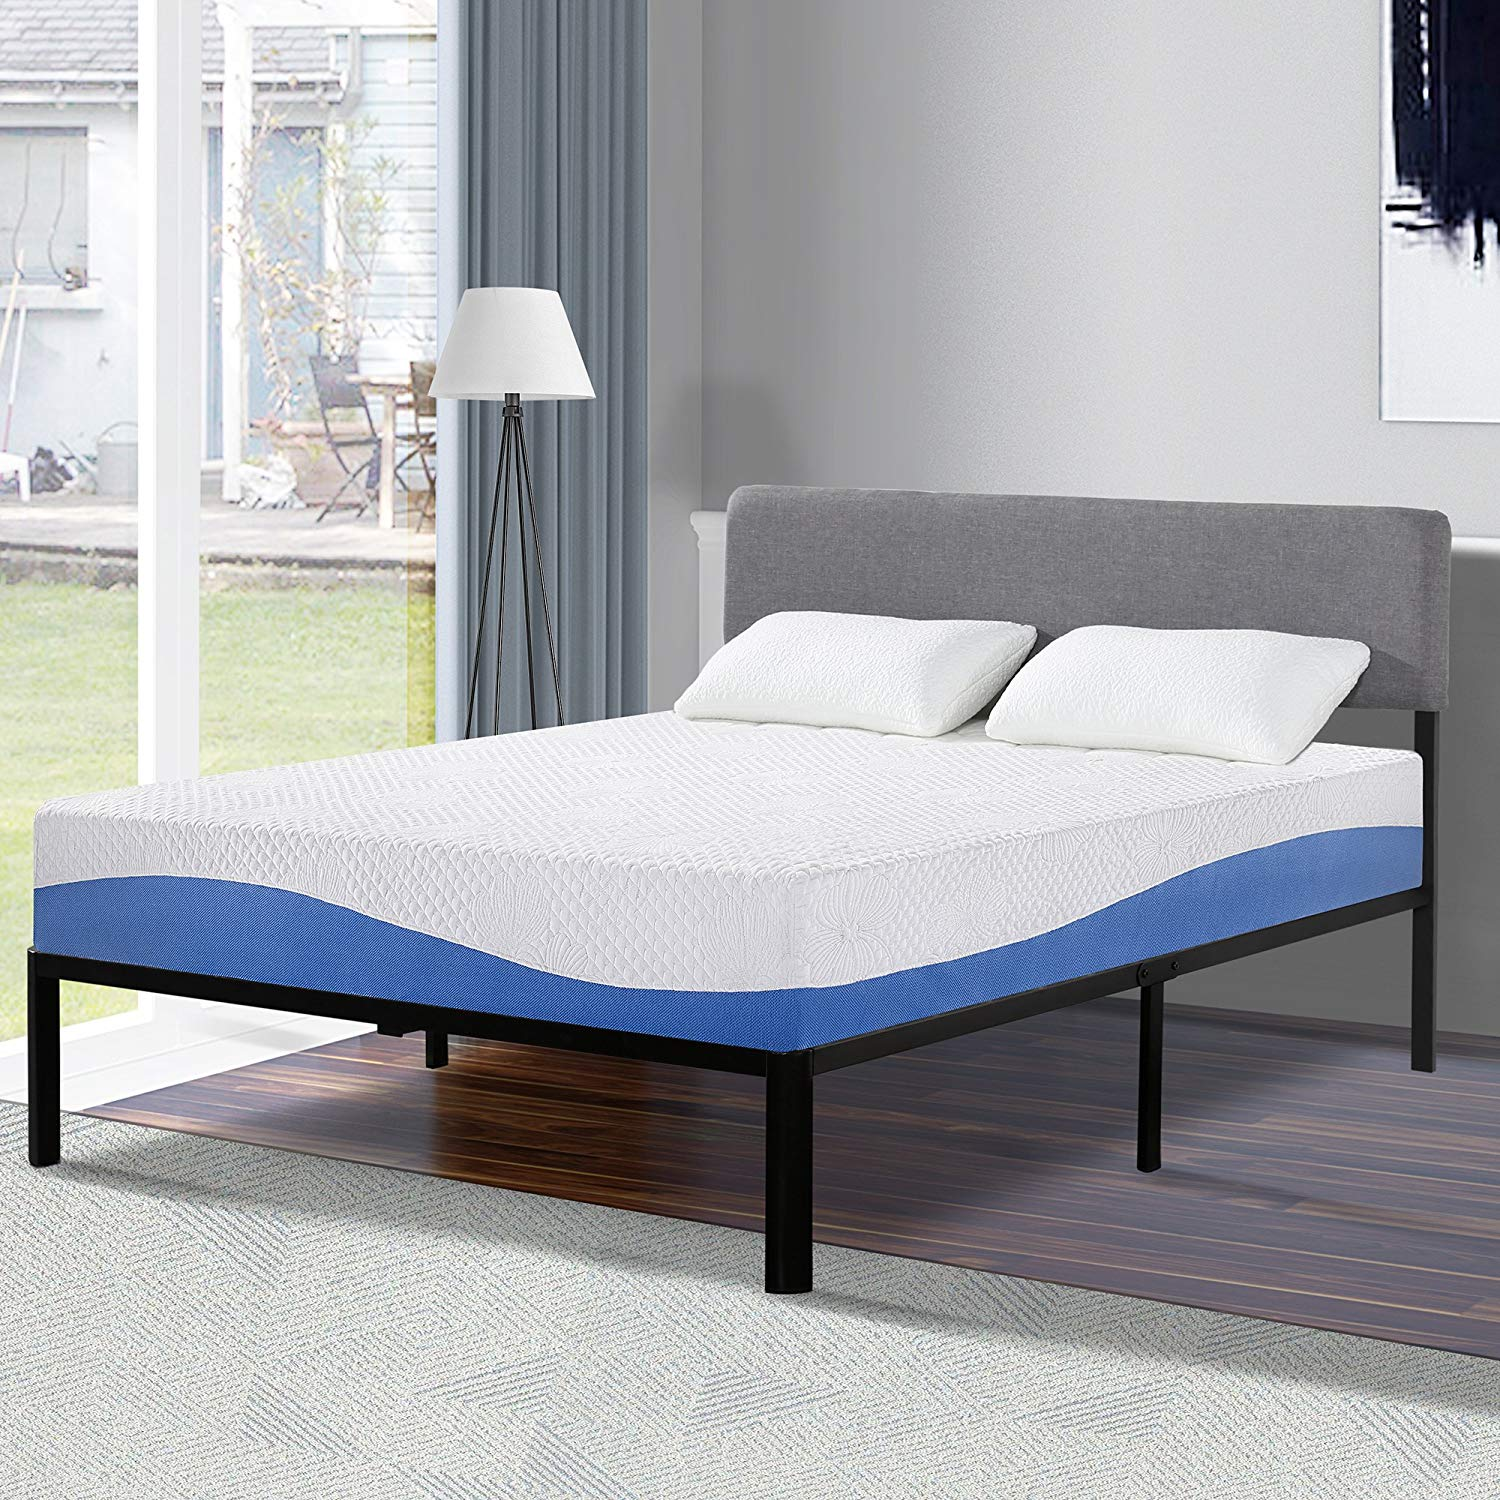 Olee Sleep Best Mattress for Lower Back Pain Review by www.snoremagazine.com